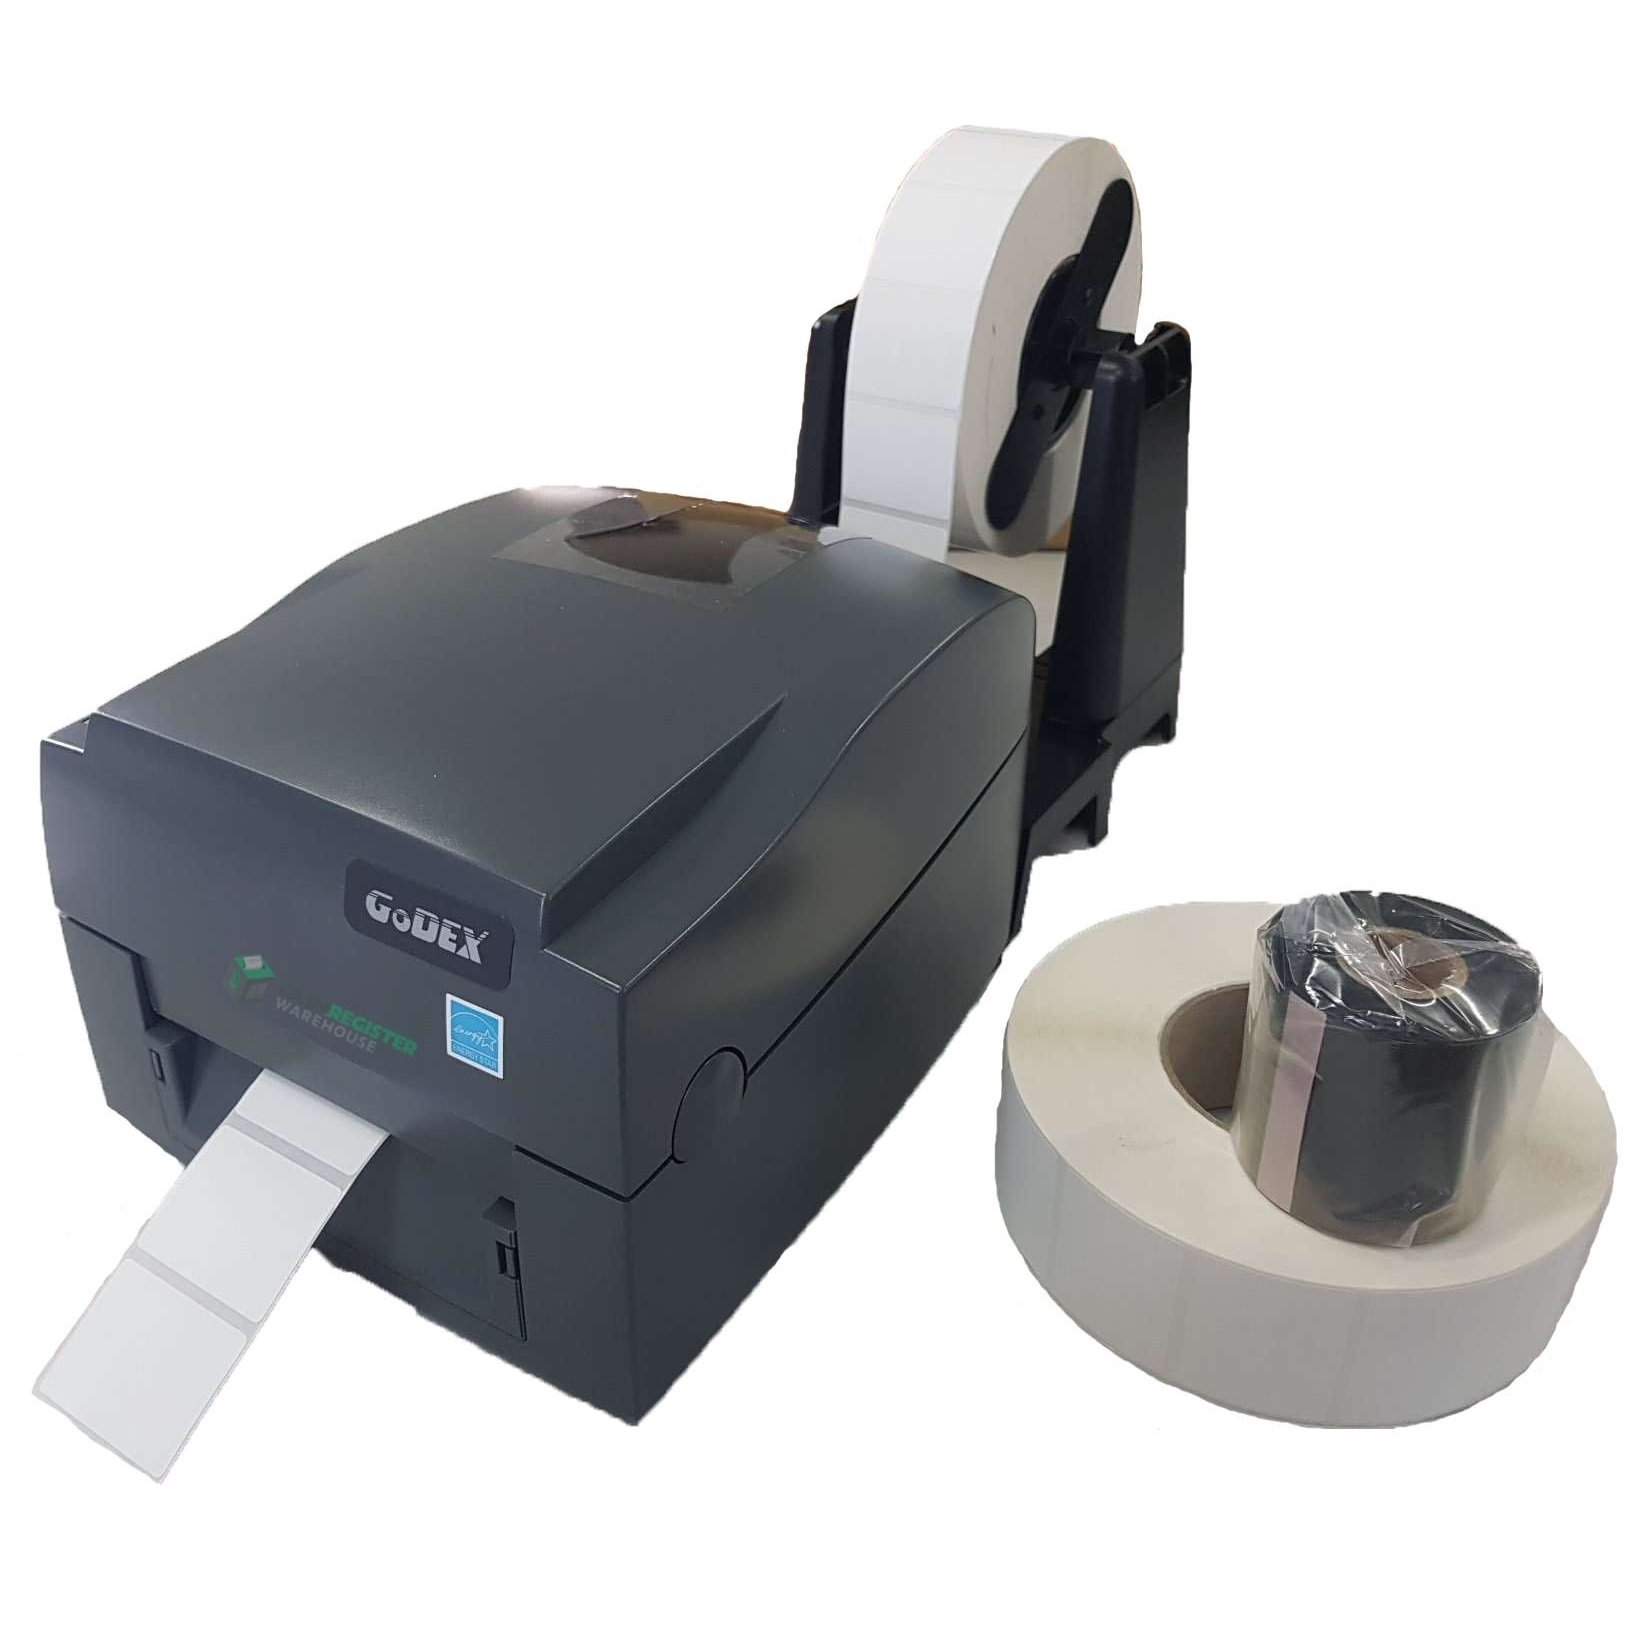 View GoDEX G500 Nursery Label Printer Bundle